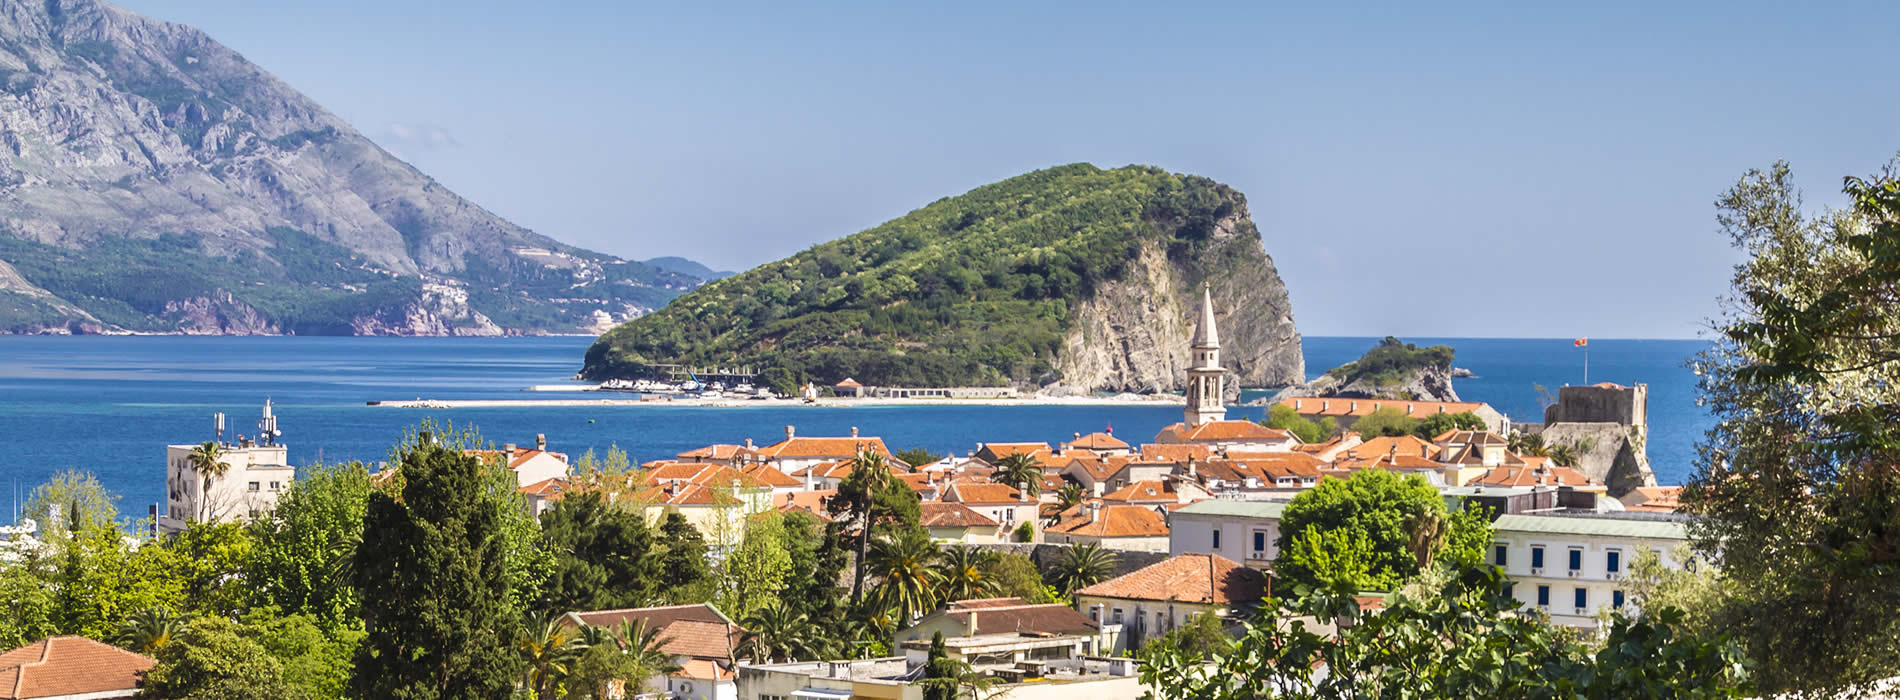 1Budva_Panoramic.jpg